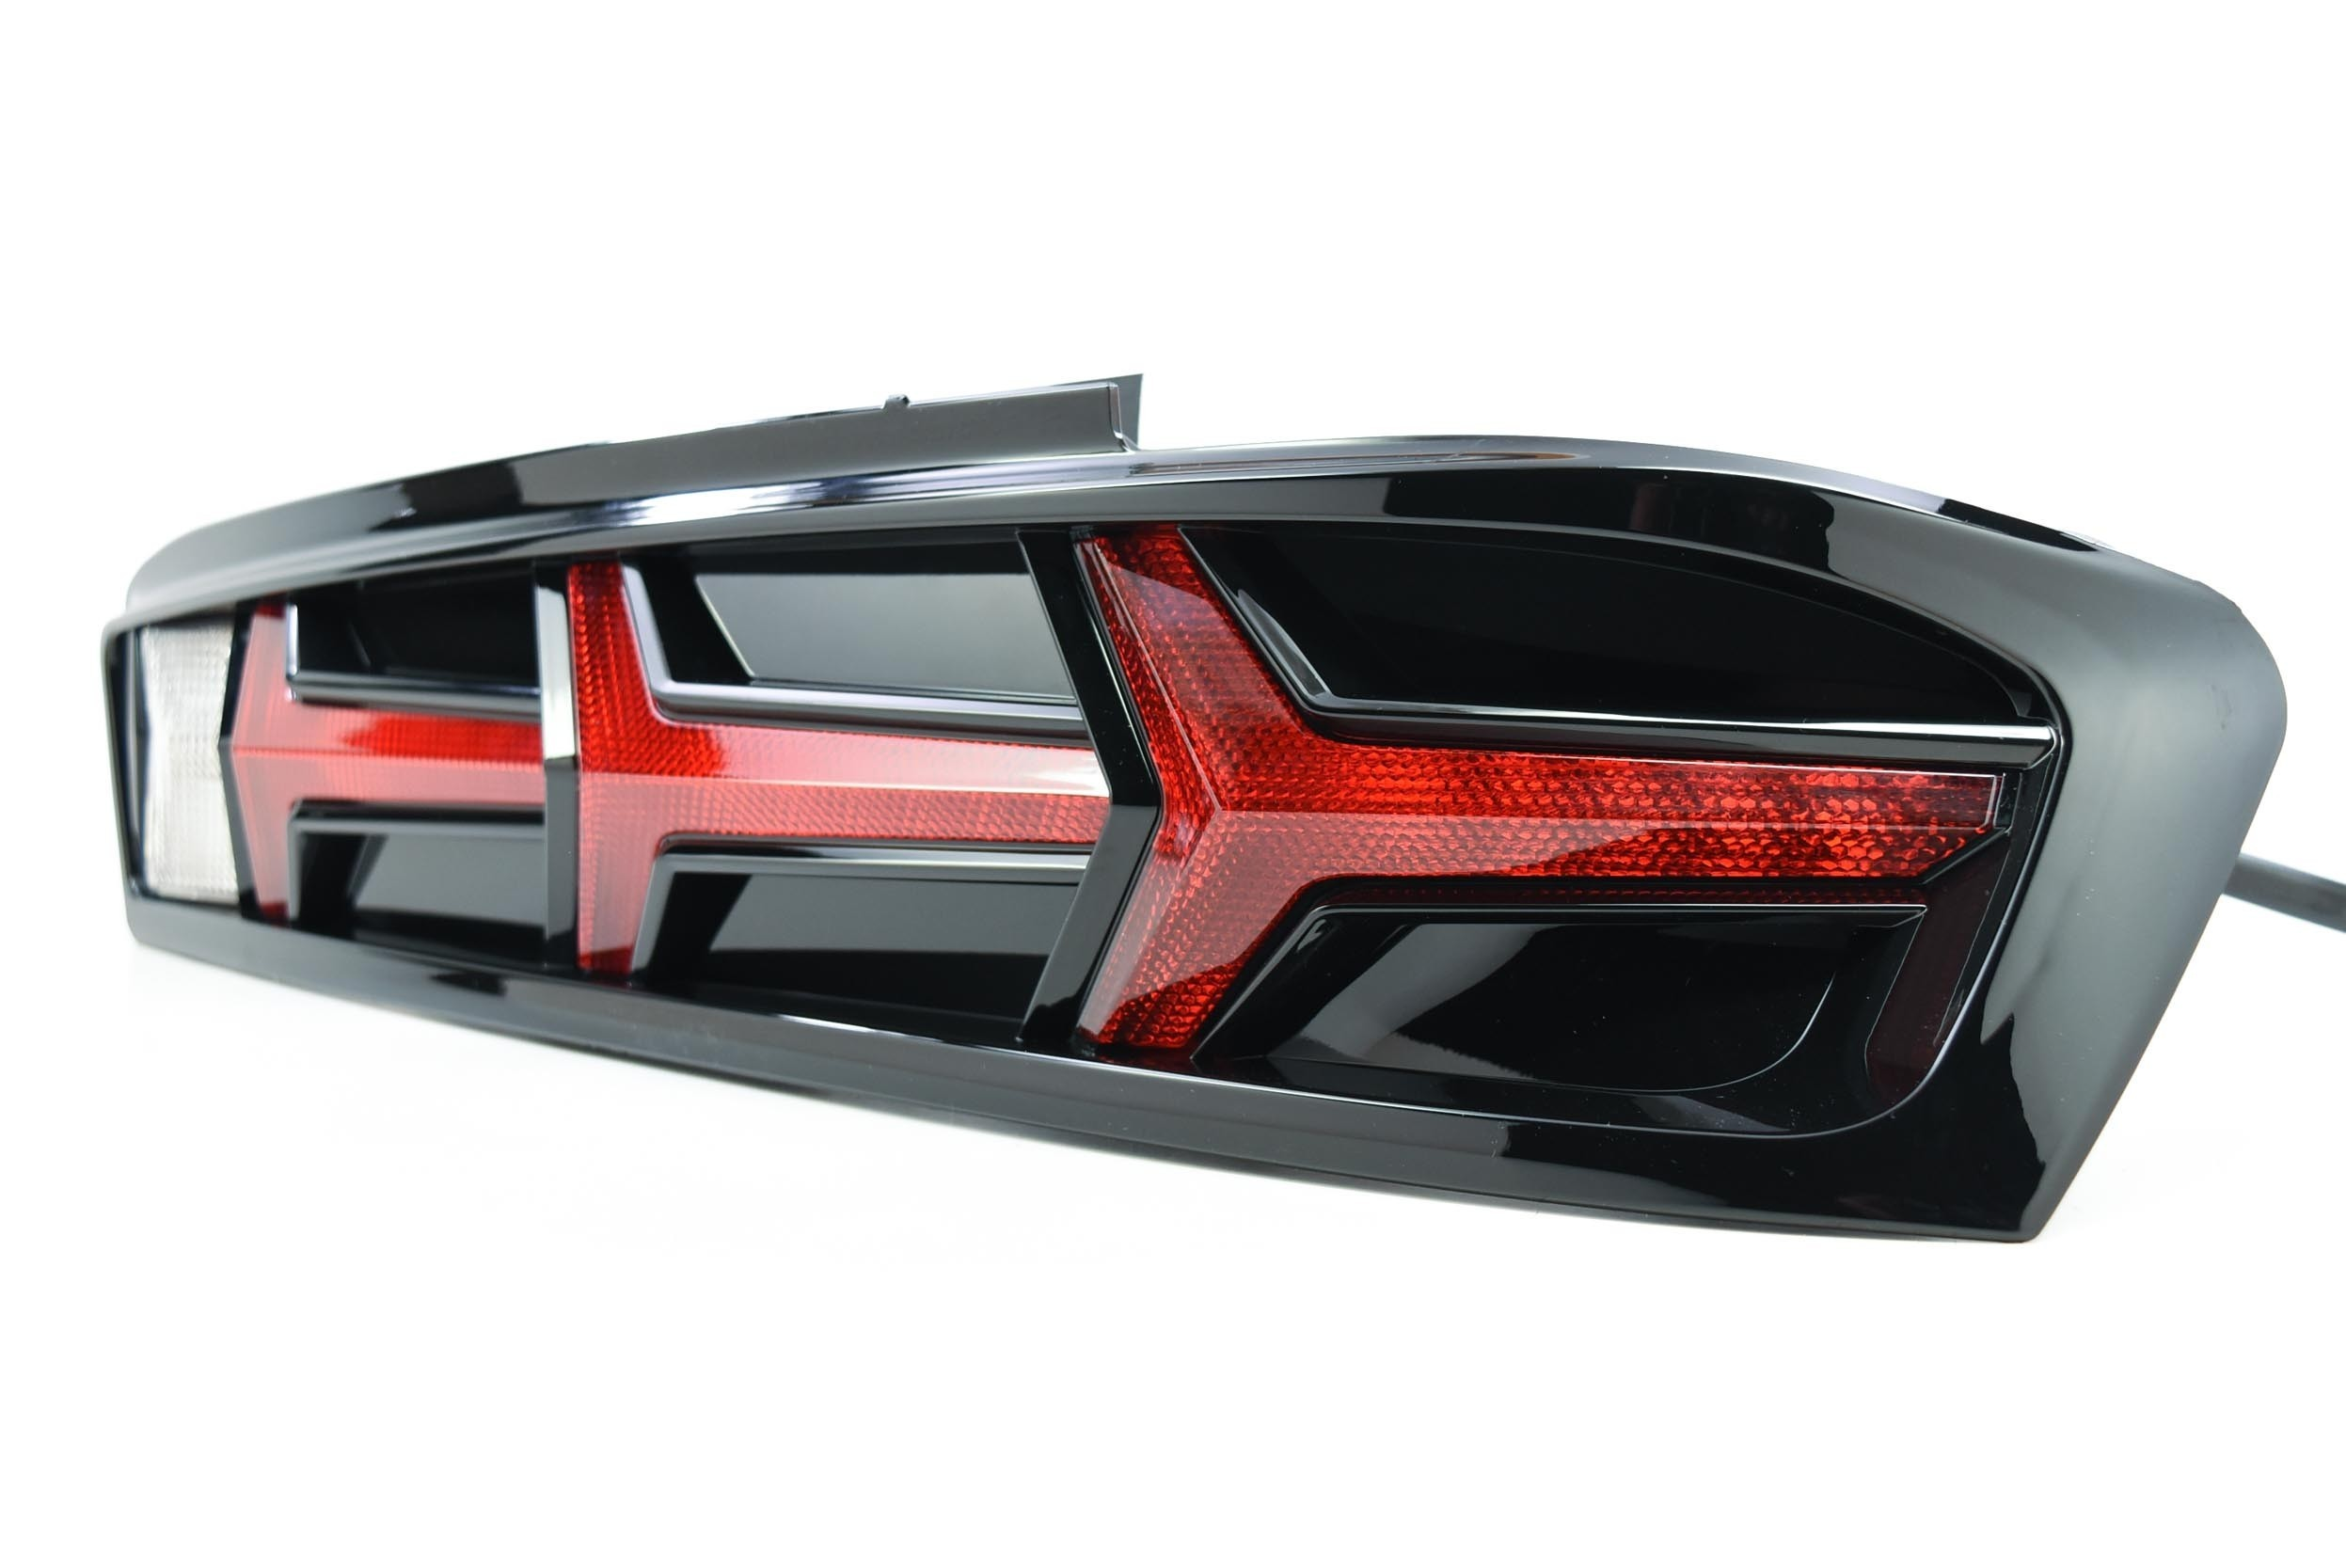 2016 Chevrolet Camaro XB LED Sequential Phastek Tail Lights plete Housings from The Retrofit Source